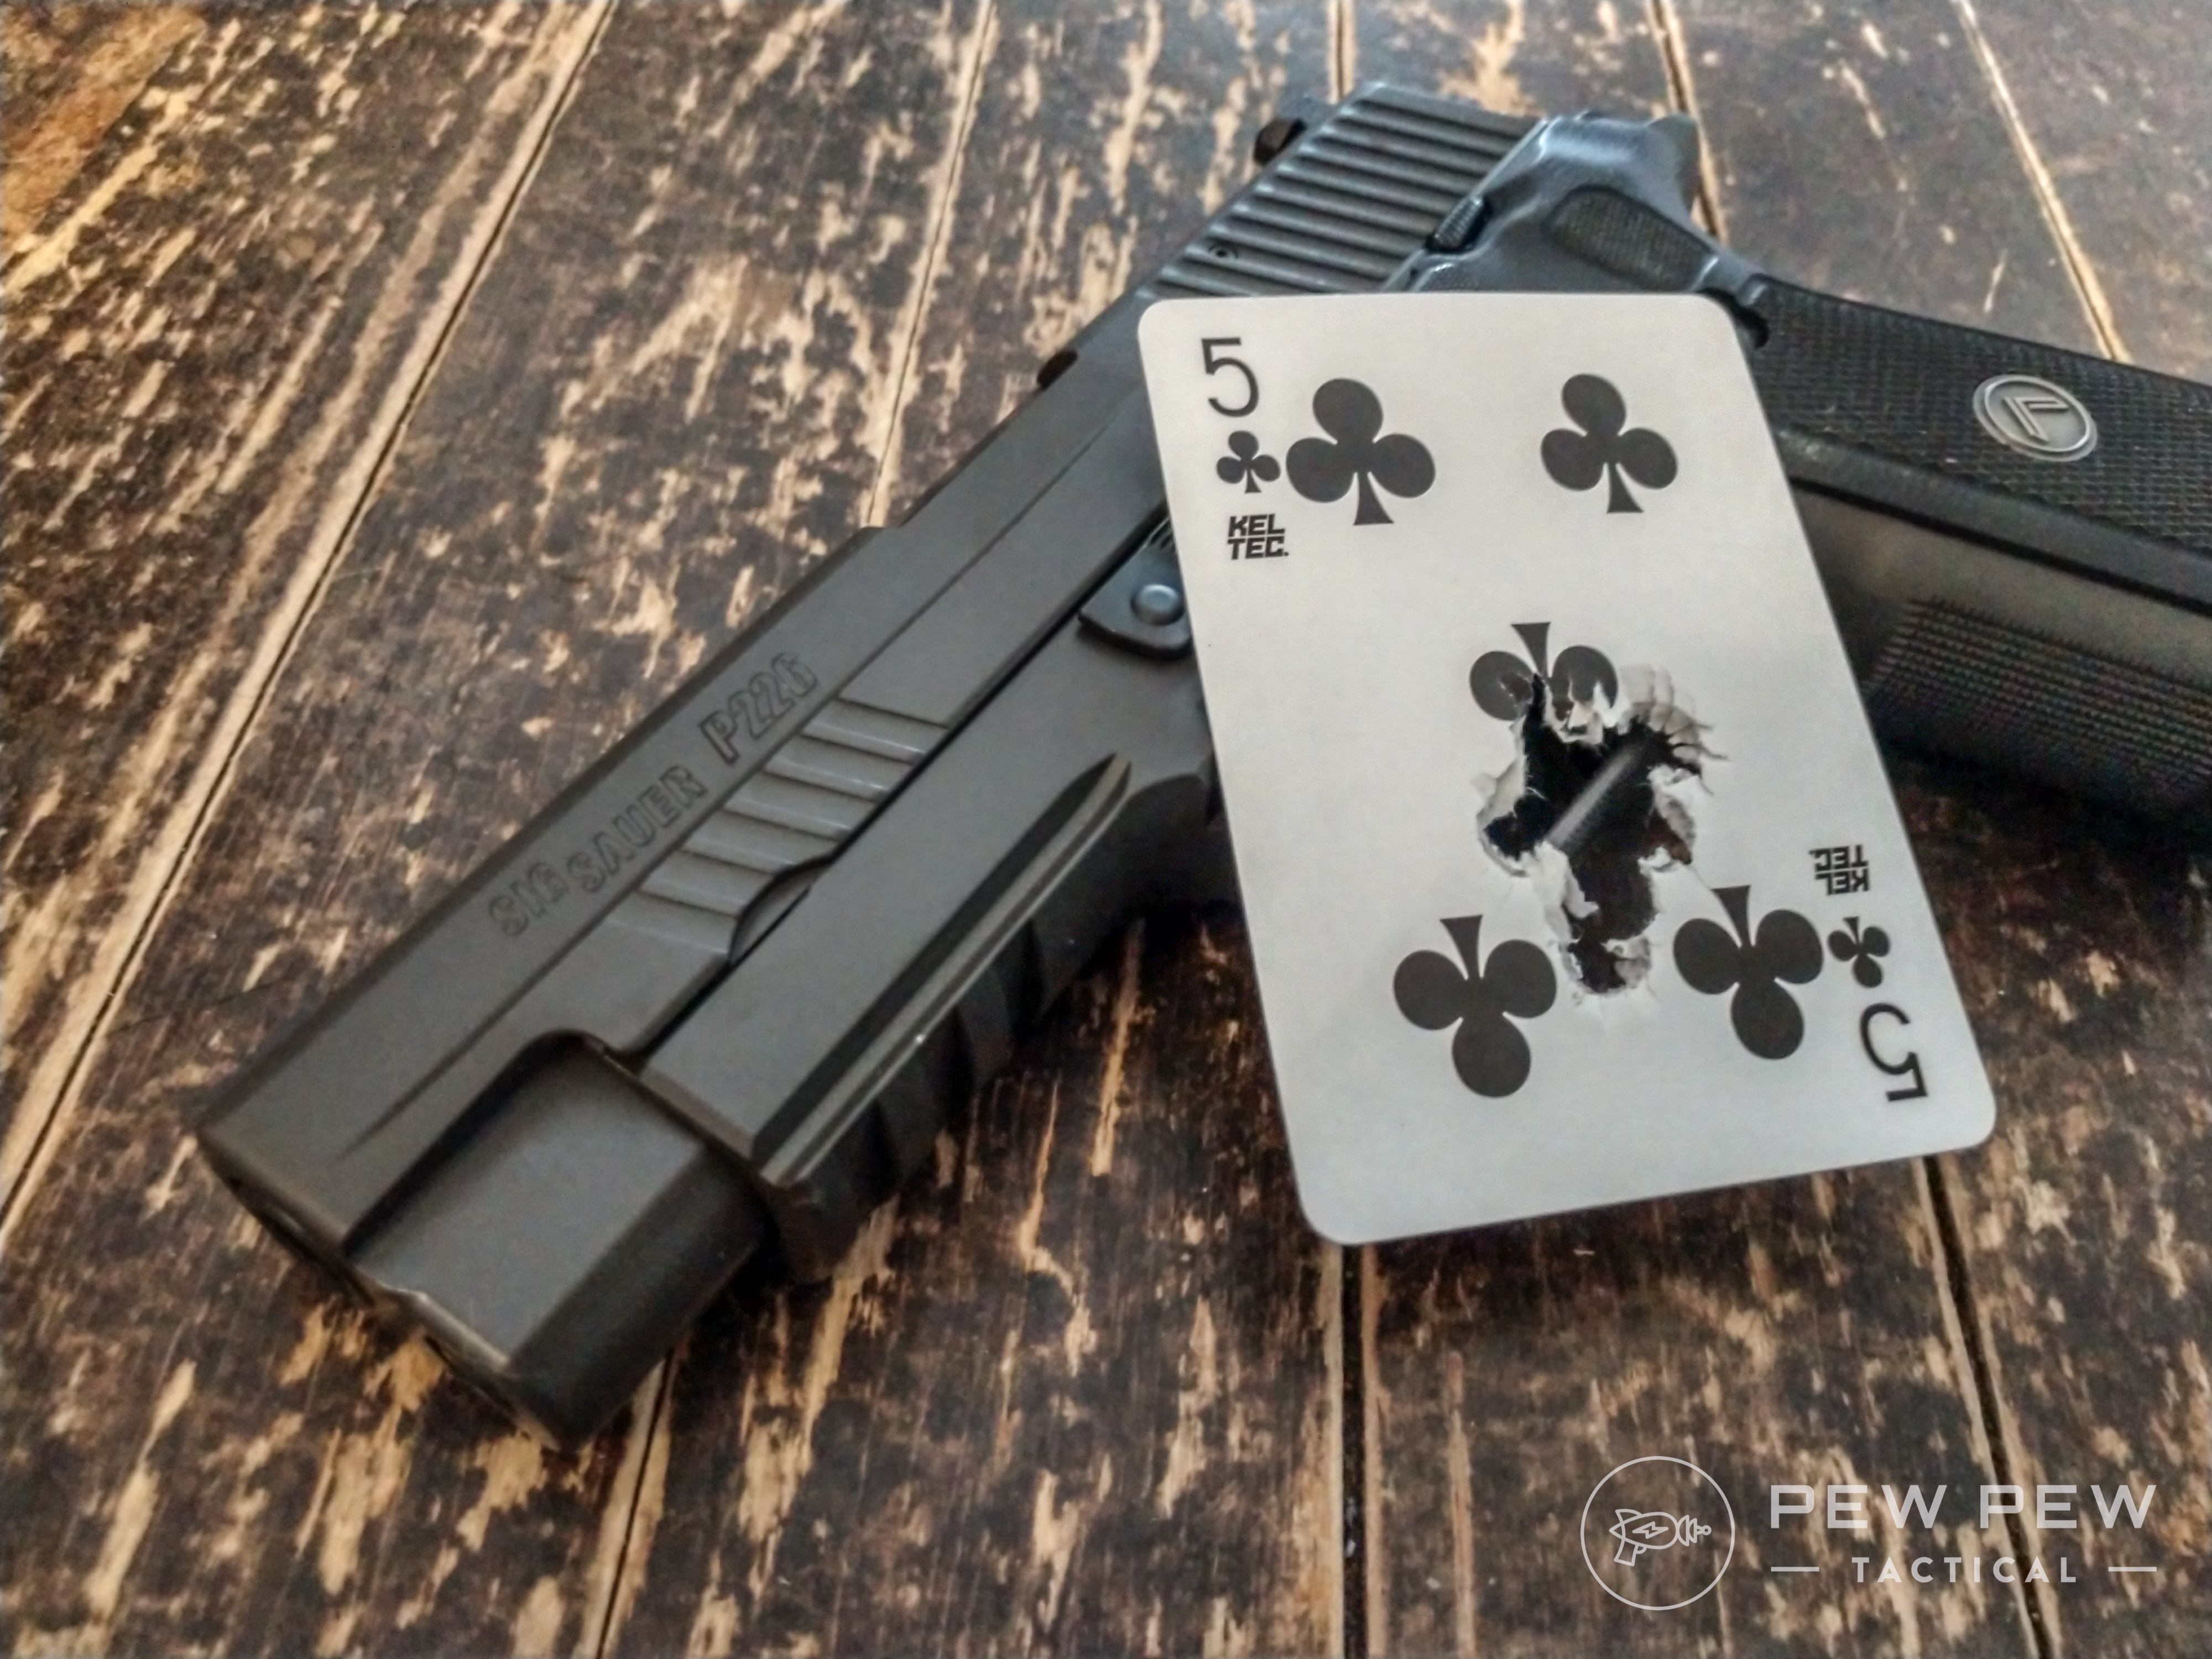 Playing card drill, anyone? The SIG P226 Legion produced this beautiful ten-round playing card drill the first magazine through the gun.